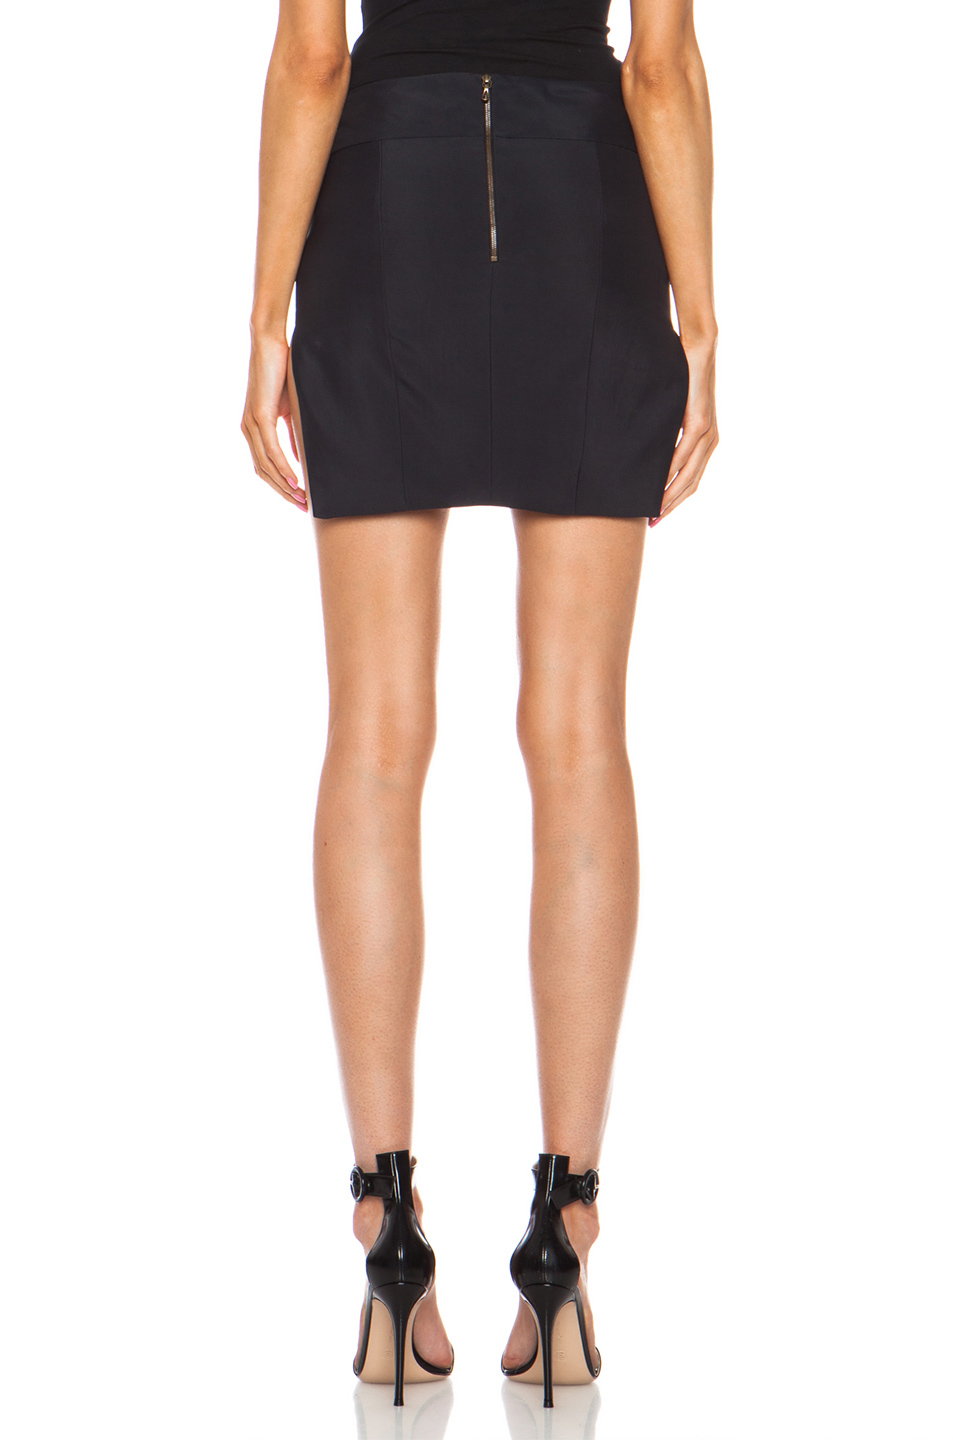 Anthony Vaccarello|Sharp Skirt in Black